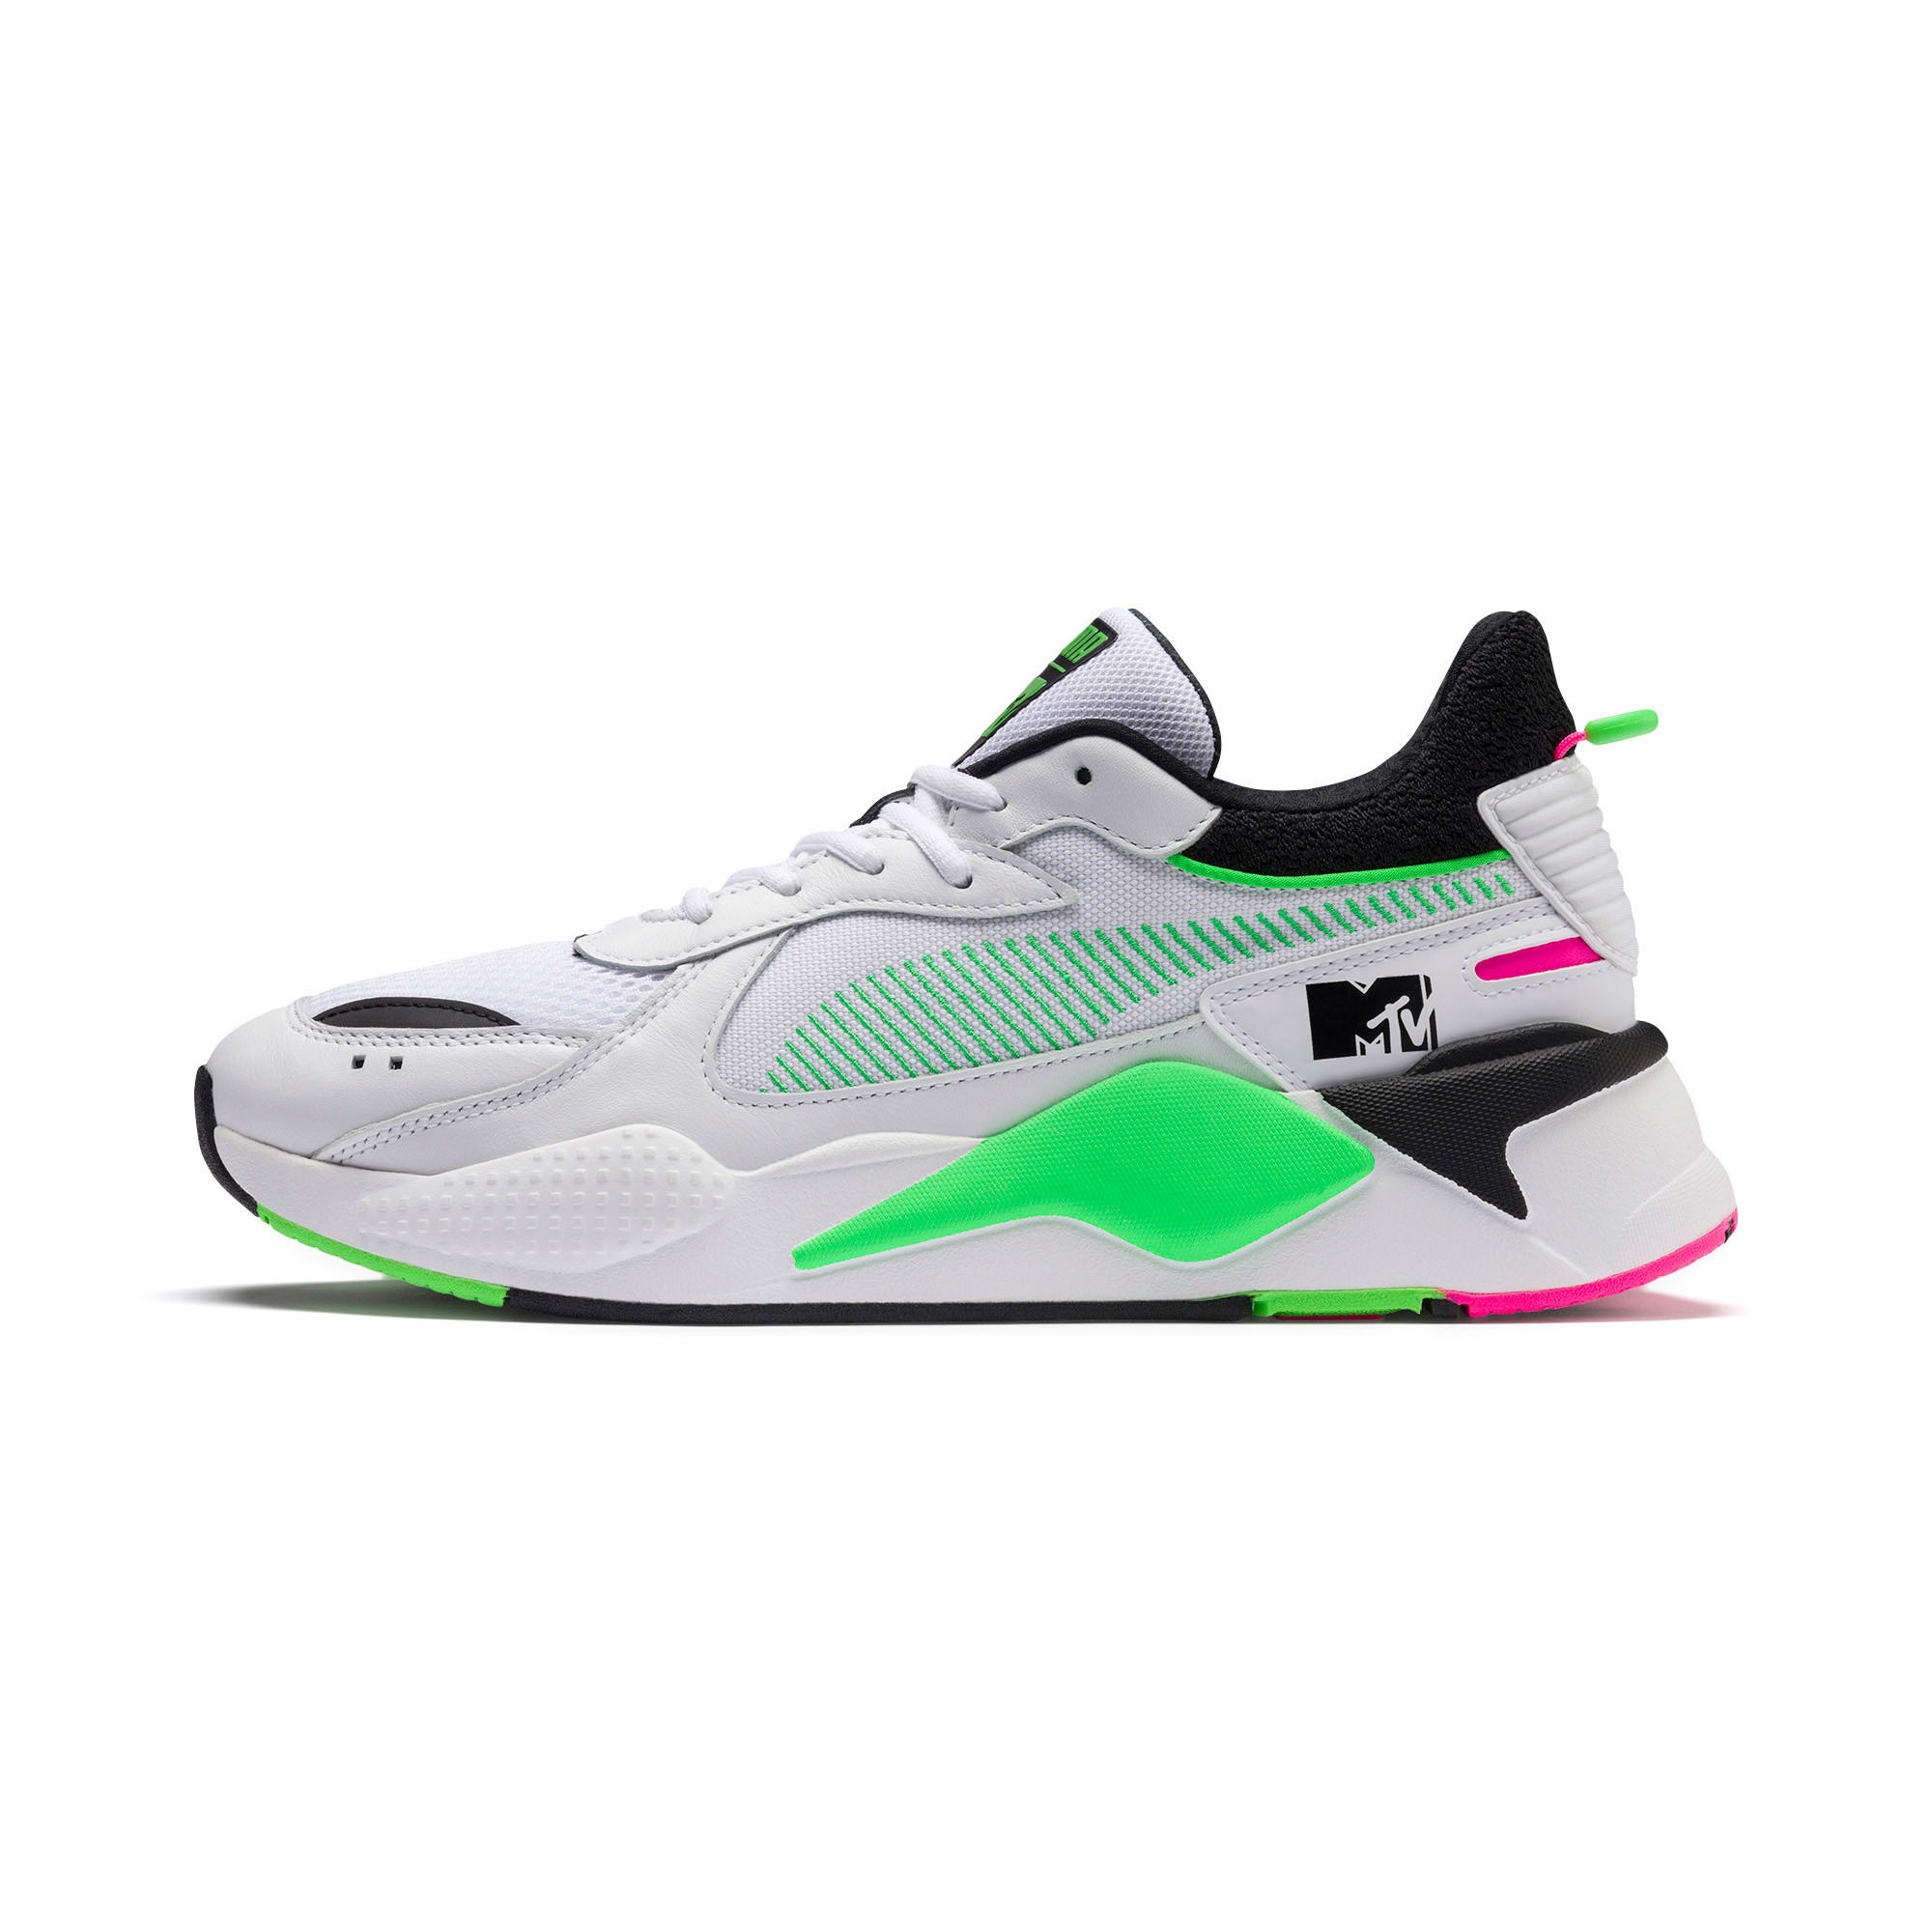 Thumbnail 1 of PUMA x MTV RS-X Tracks Yo! Raps Europe Sneaker, Puma White-802 C Fluro Green, medium